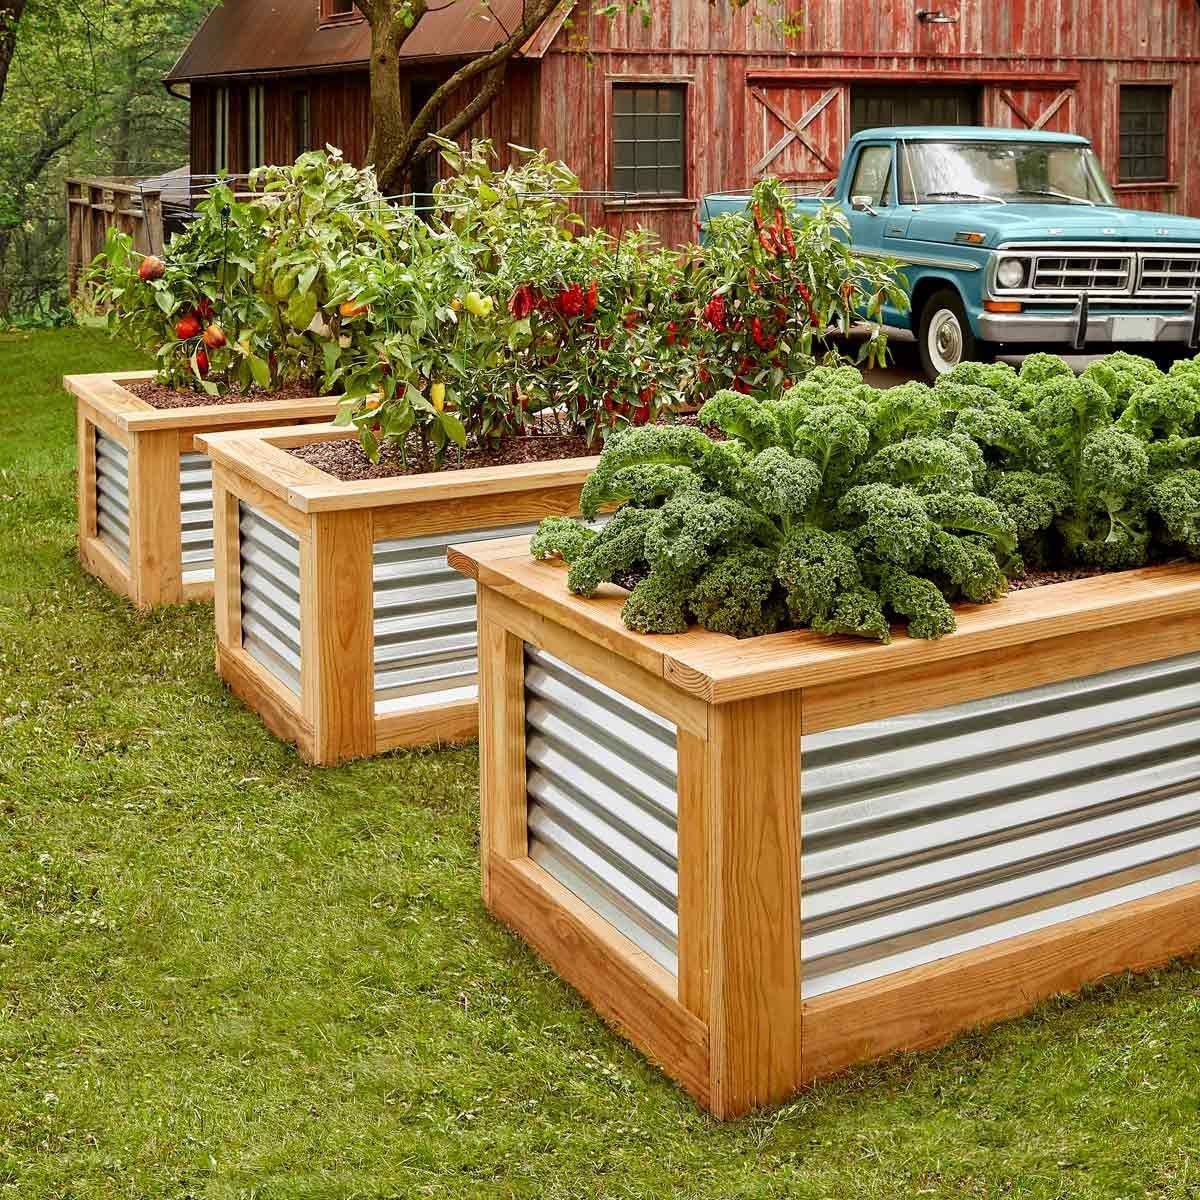 Some Gardeners Prefer Traditional Gardening But Not The Ones We Ve Been Hearing From In 2020 Building Raised Garden Beds Building A Raised Garden Garden Boxes Raised